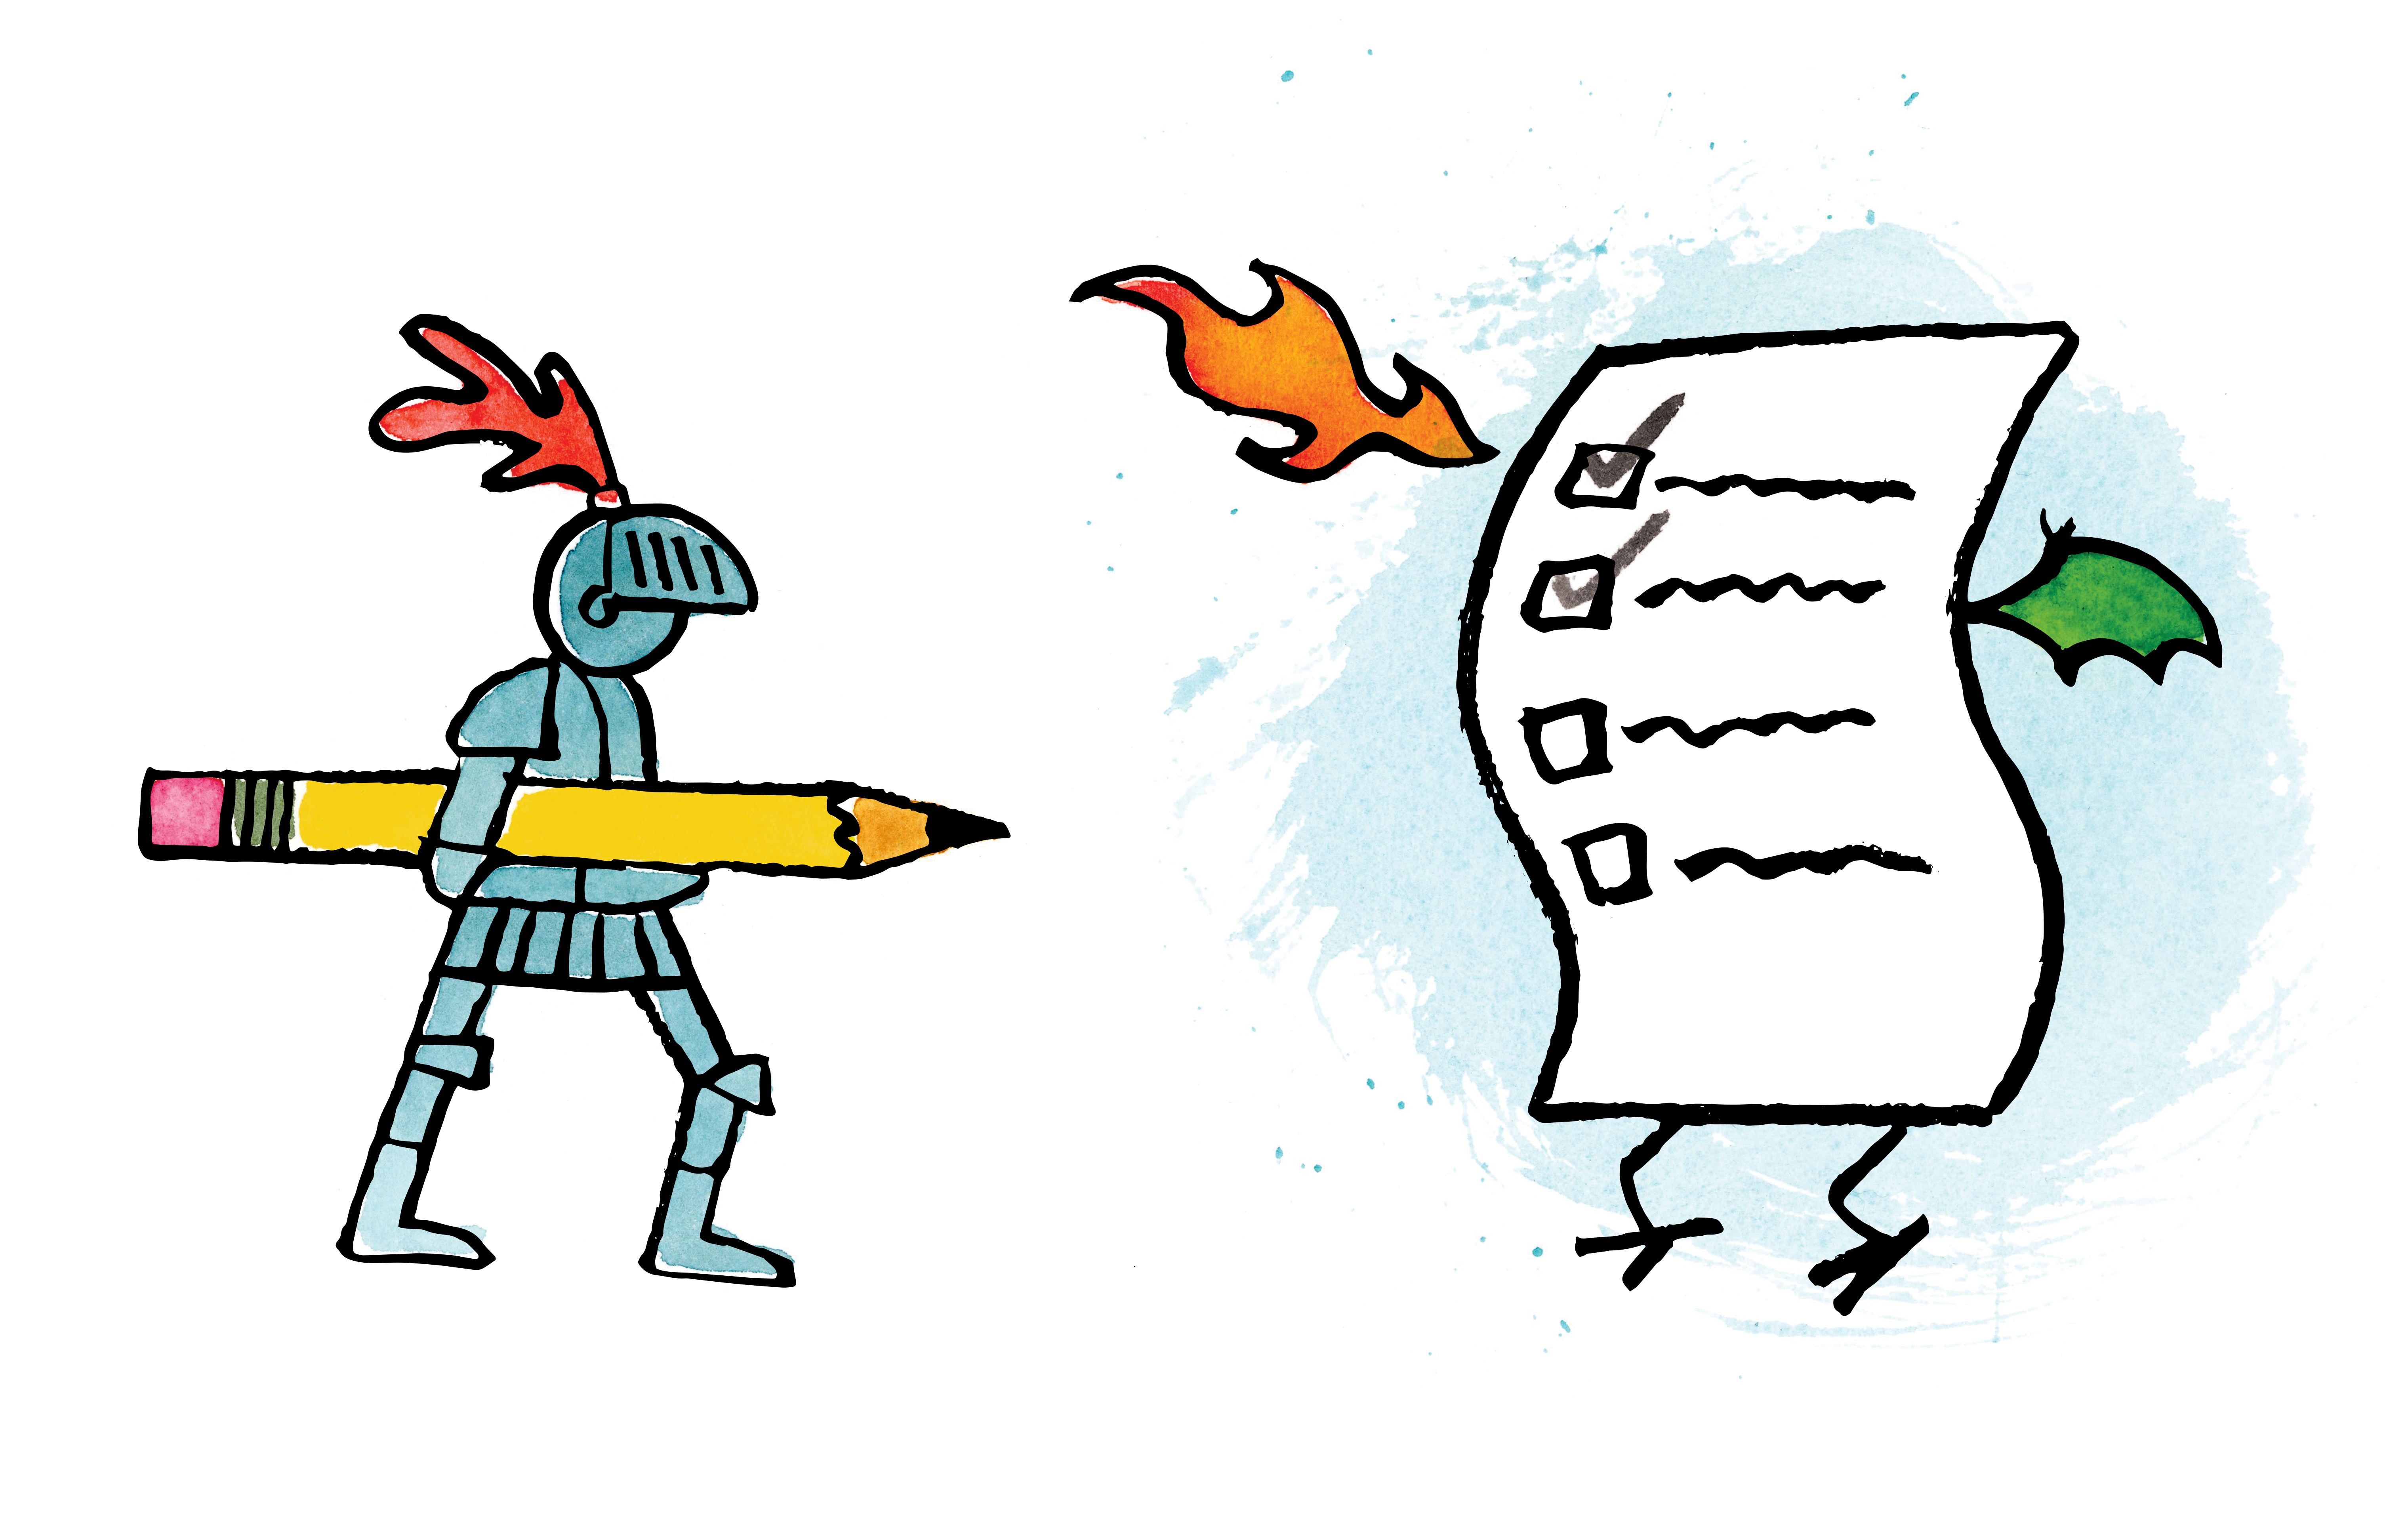 A knight in full armor holding a pencil checking off a list